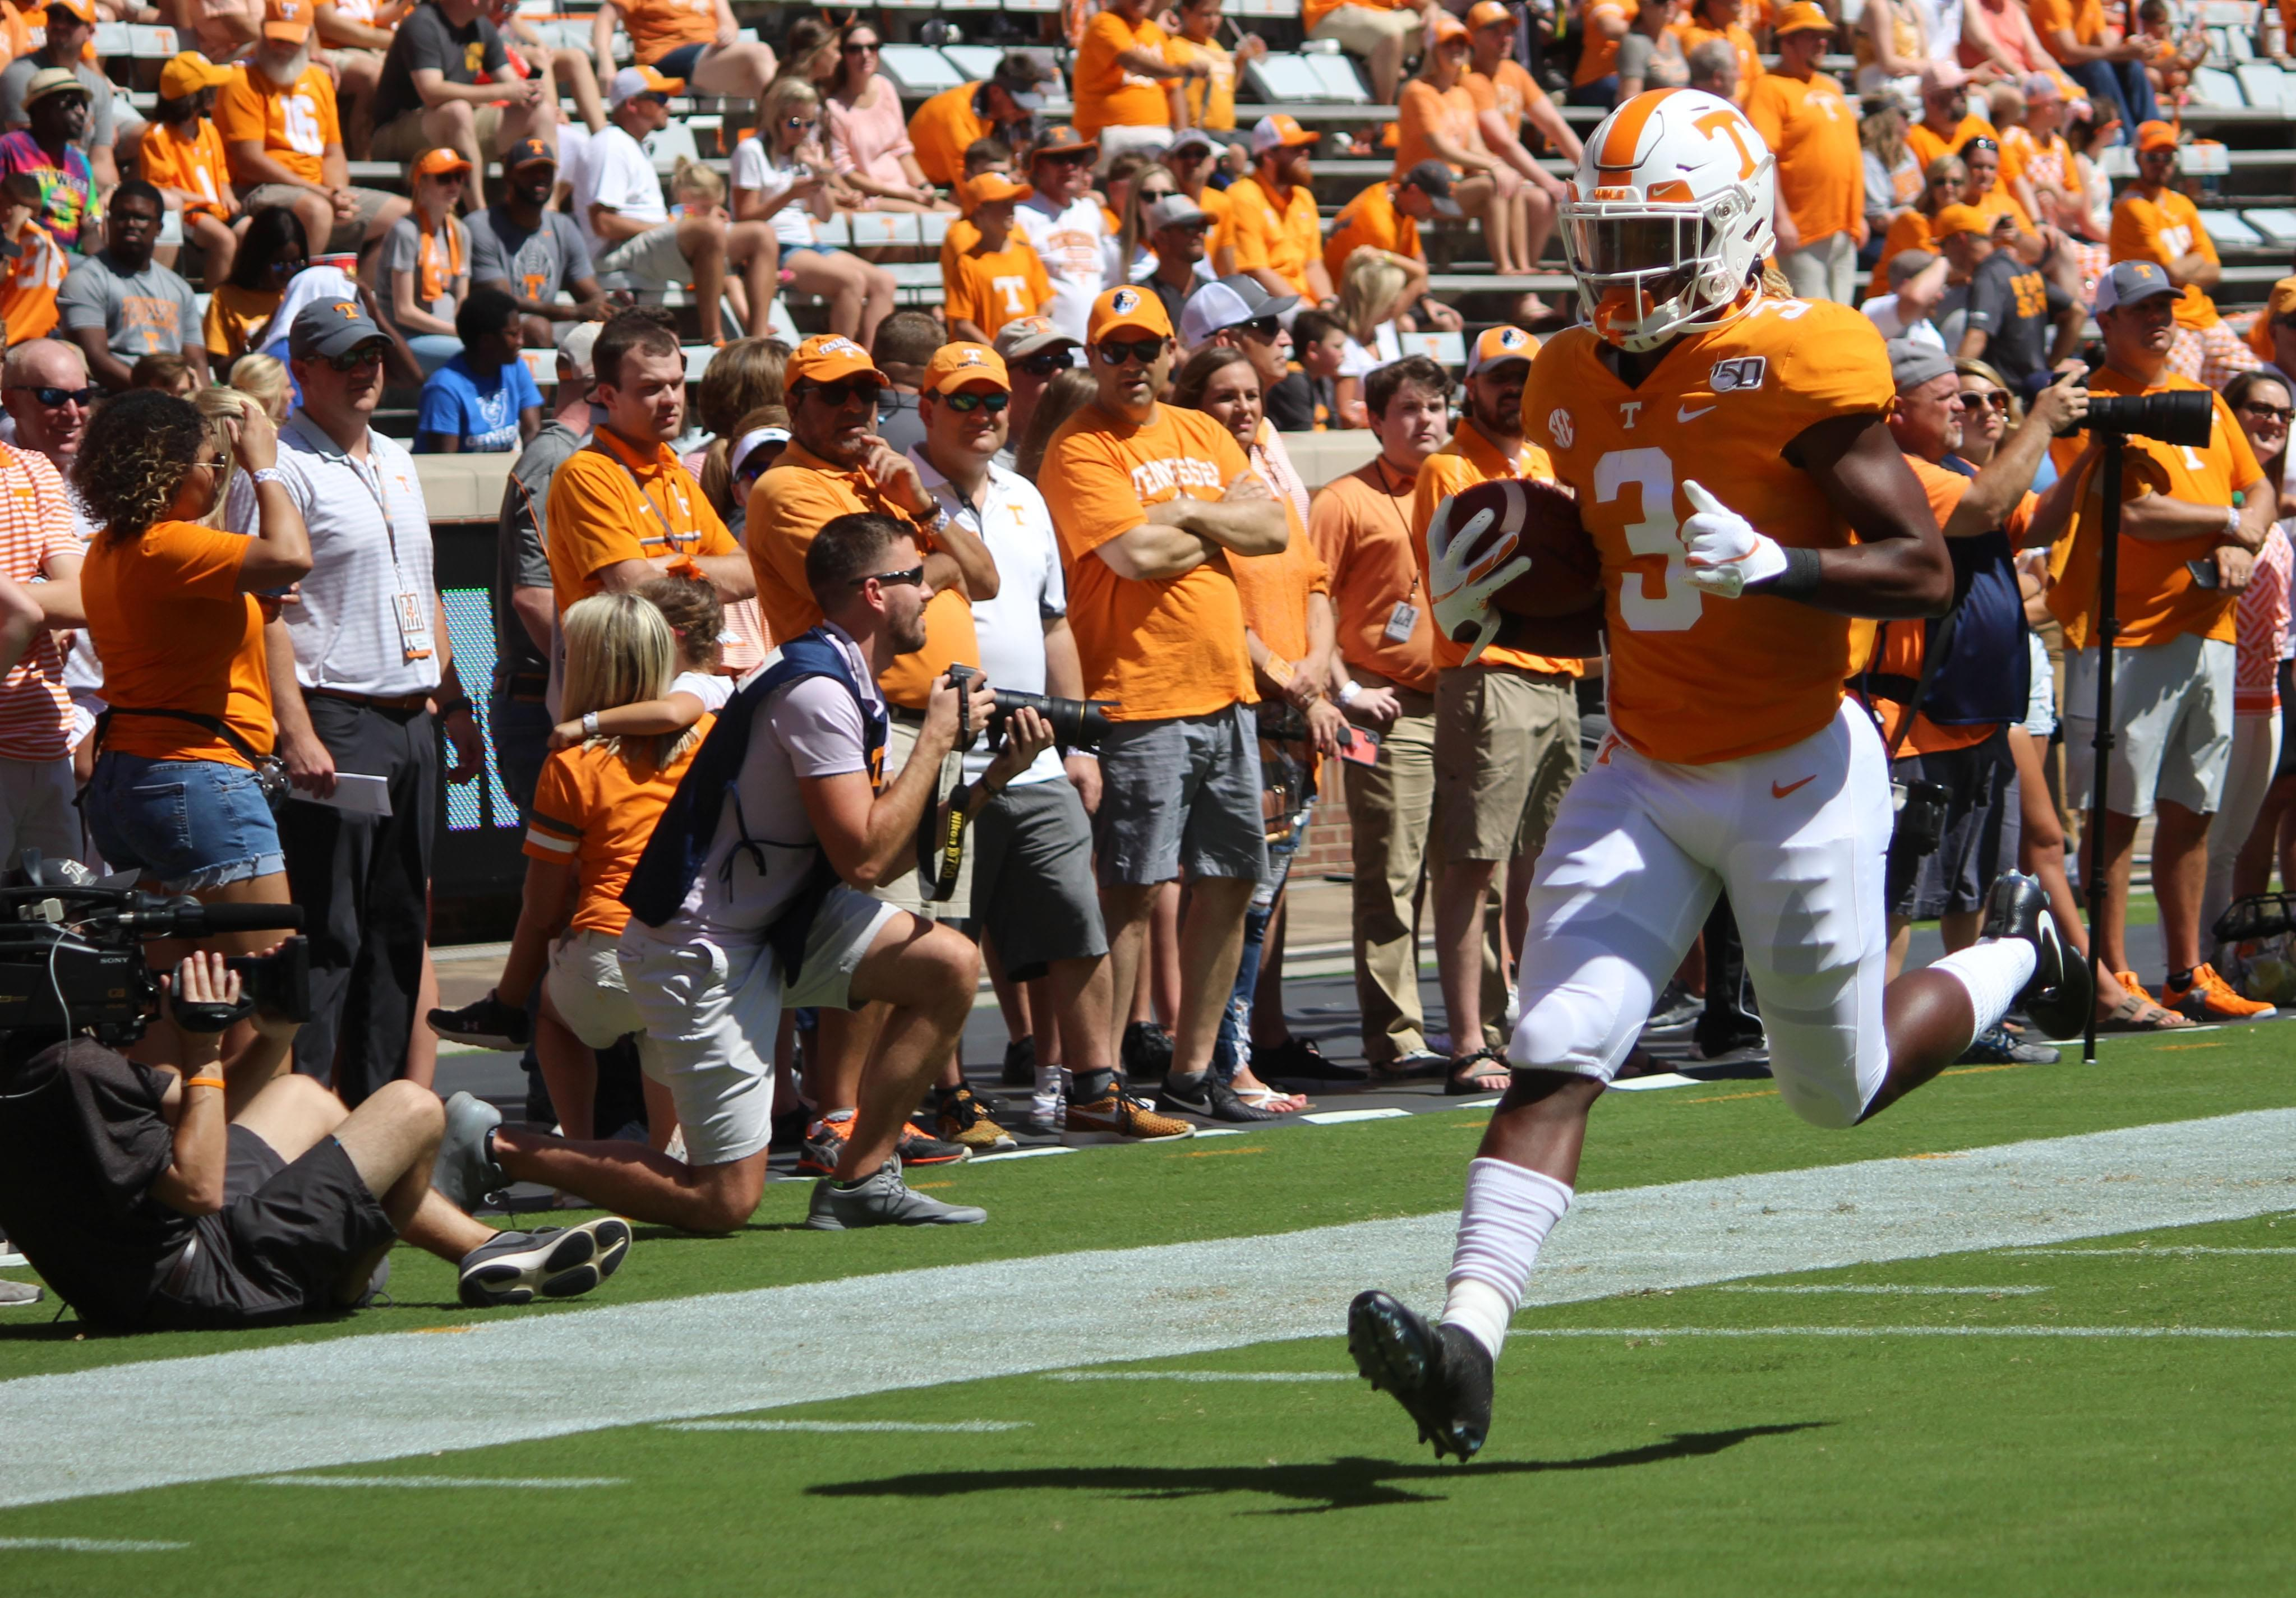 Silverberg: Dissecting Tennessee's stunning loss to BYU